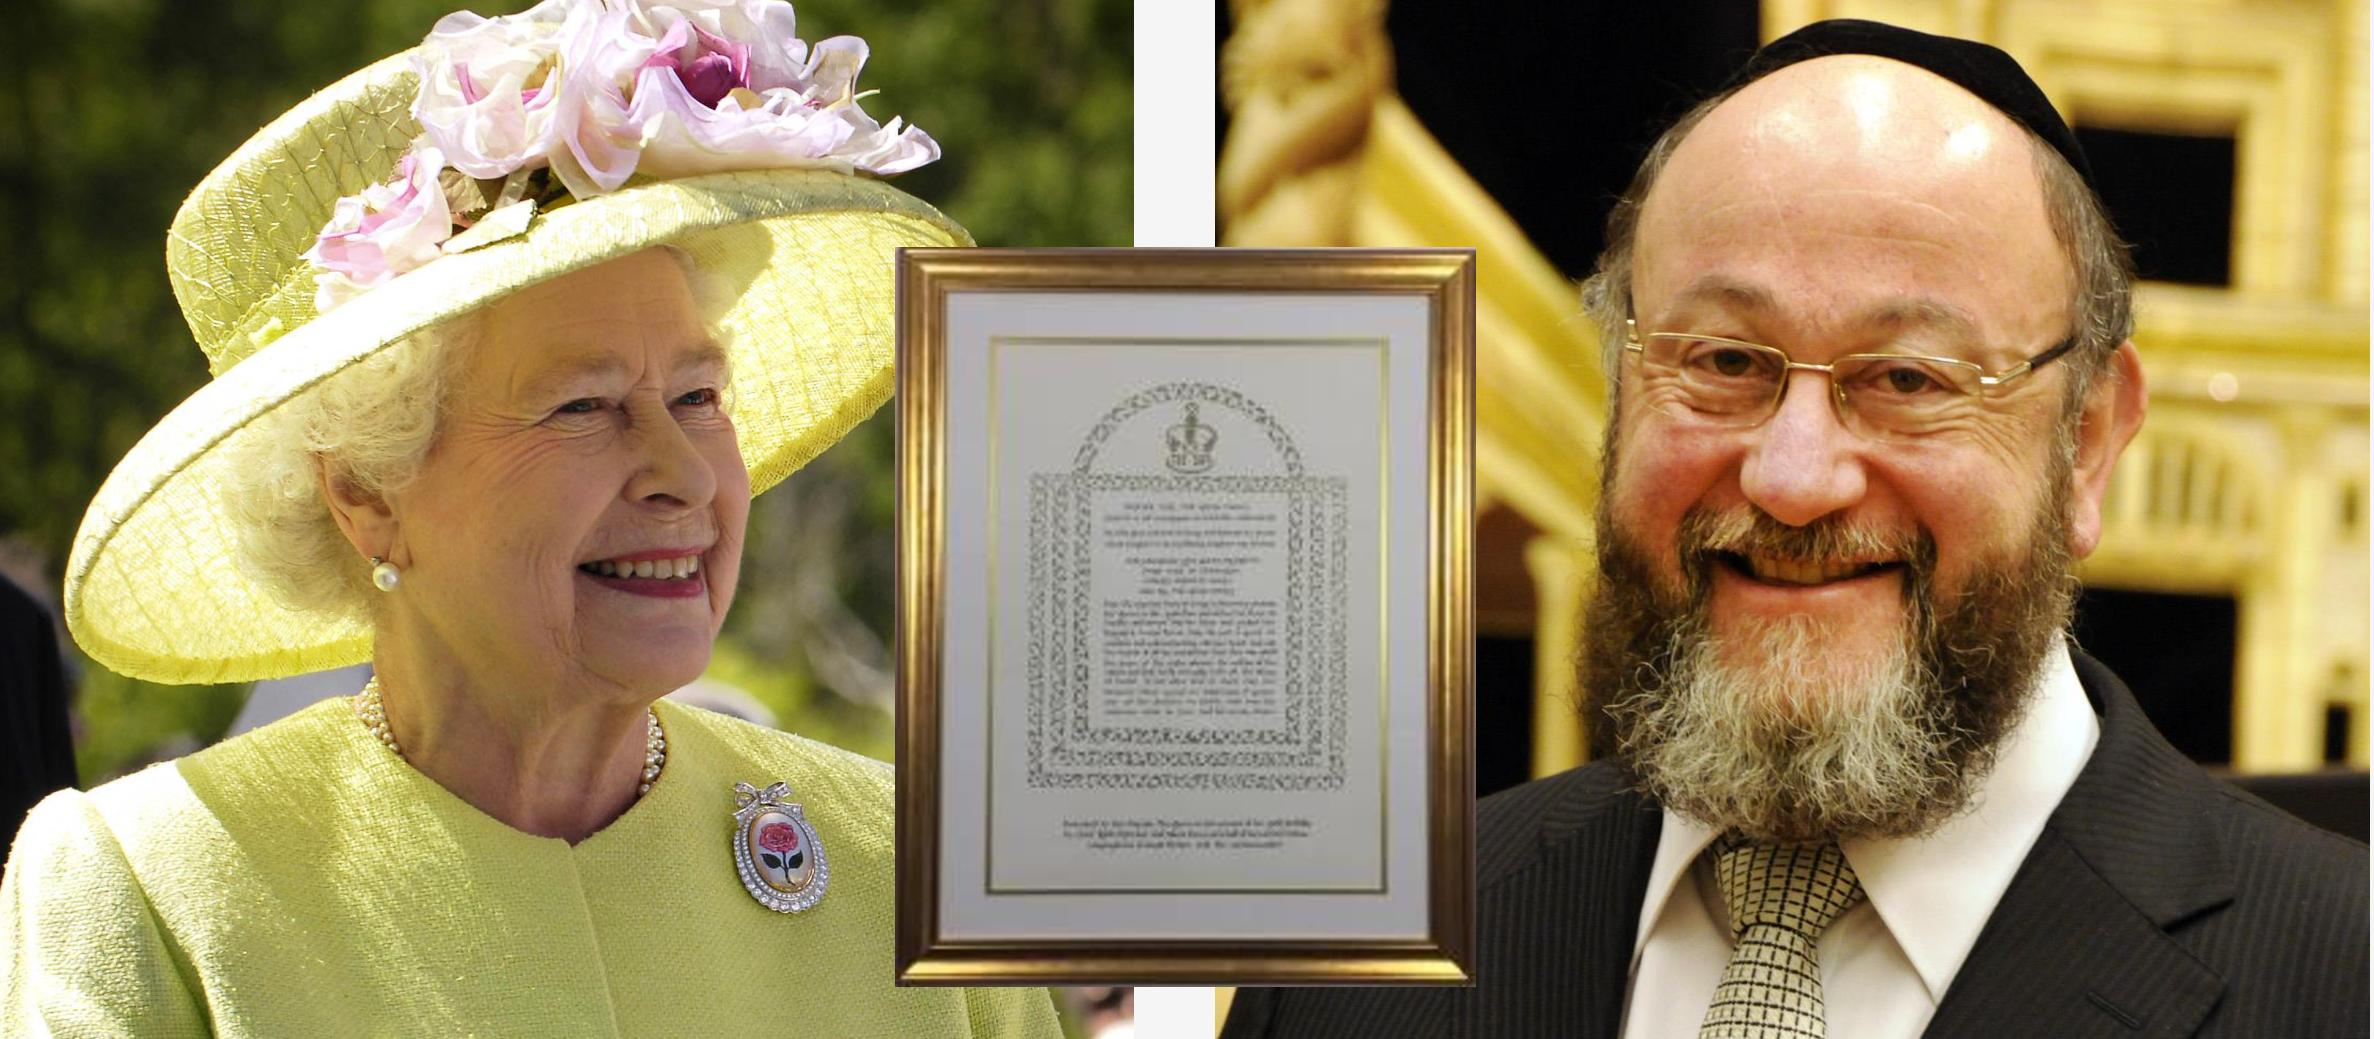 'Prayer for the Royal Family' – Chief Rabbi presents Queen with special 90th birthday gift